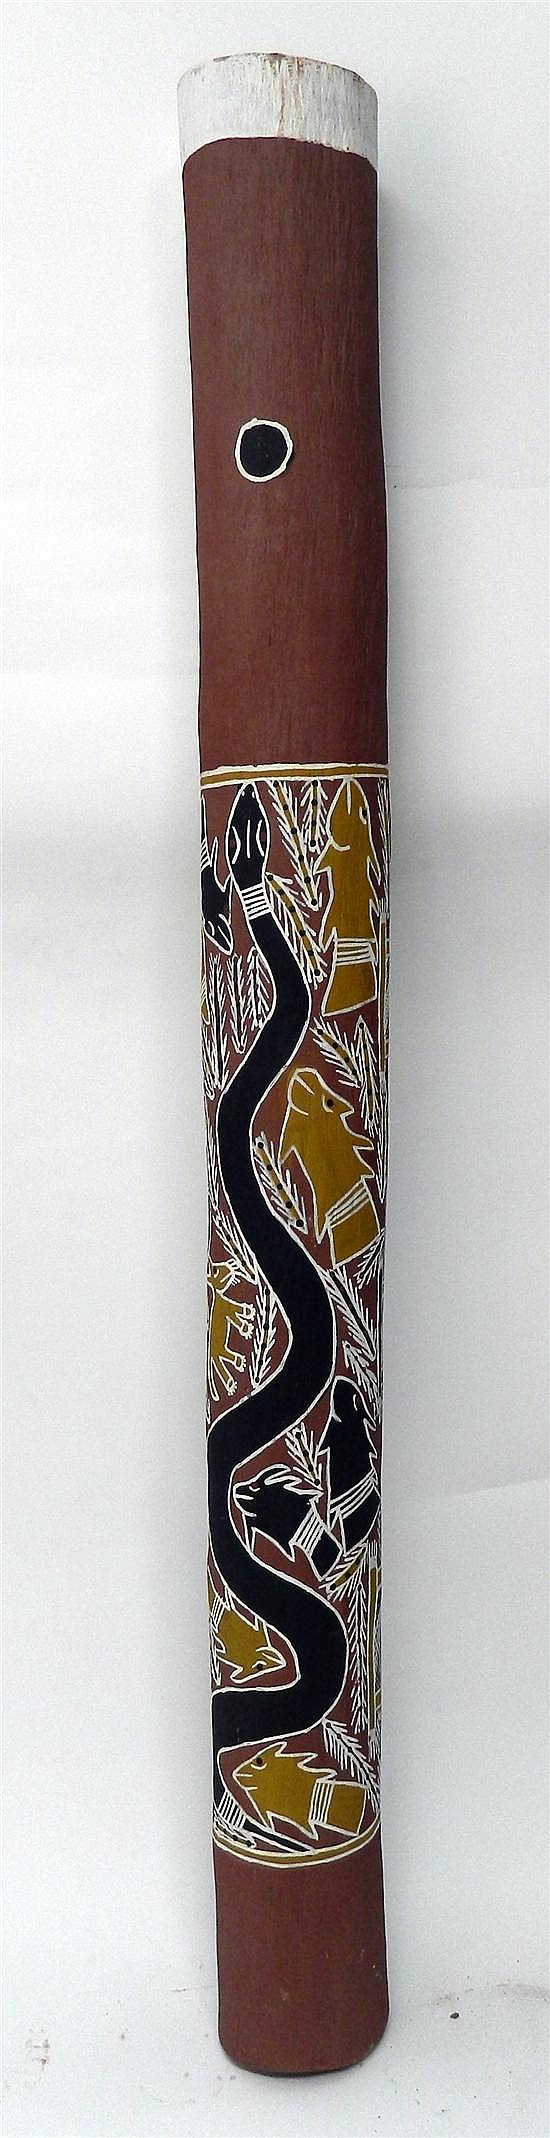 Artist Unknown North East Arnhemland Lorrken Burial Pole decorated with Kangaroo, Fish & Bird motifs 2000 Earth pigments on timber